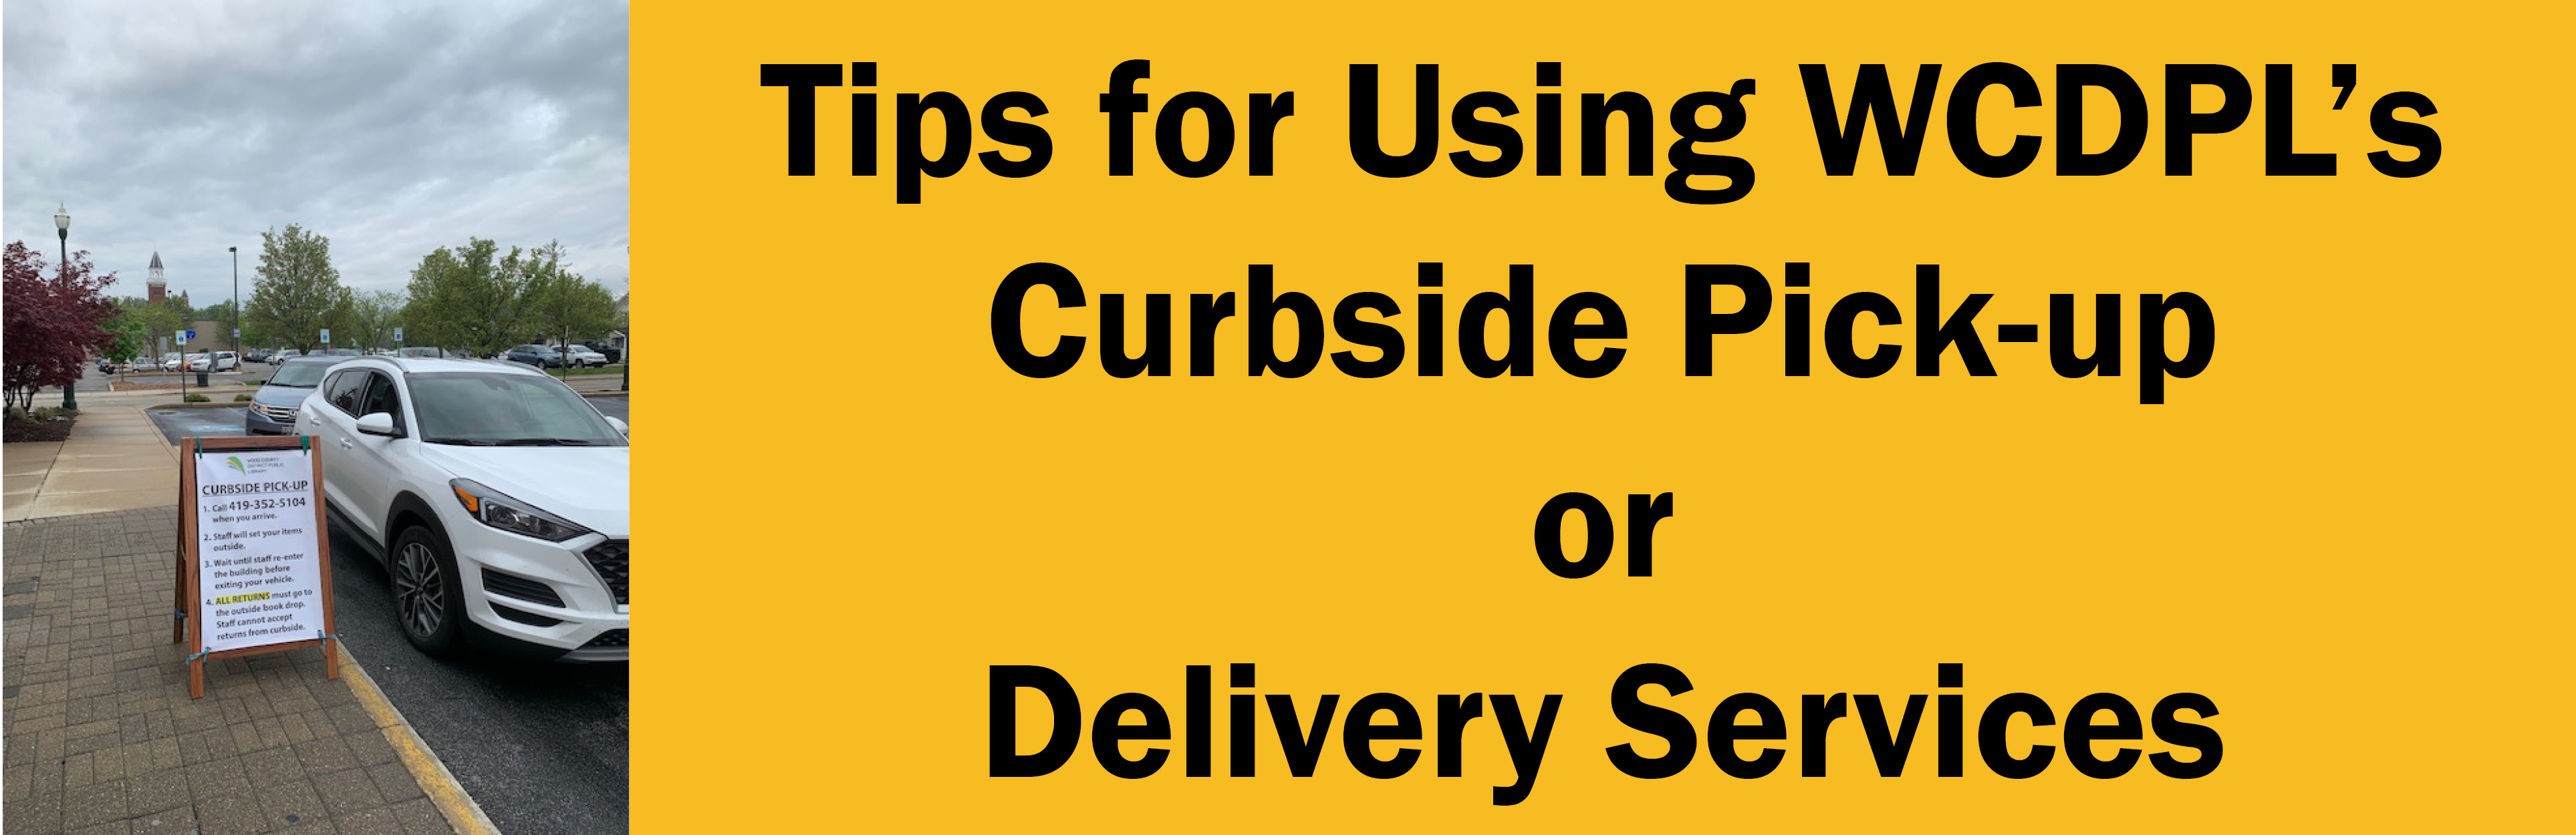 Link to Curbside Pickup and Delivery services tips